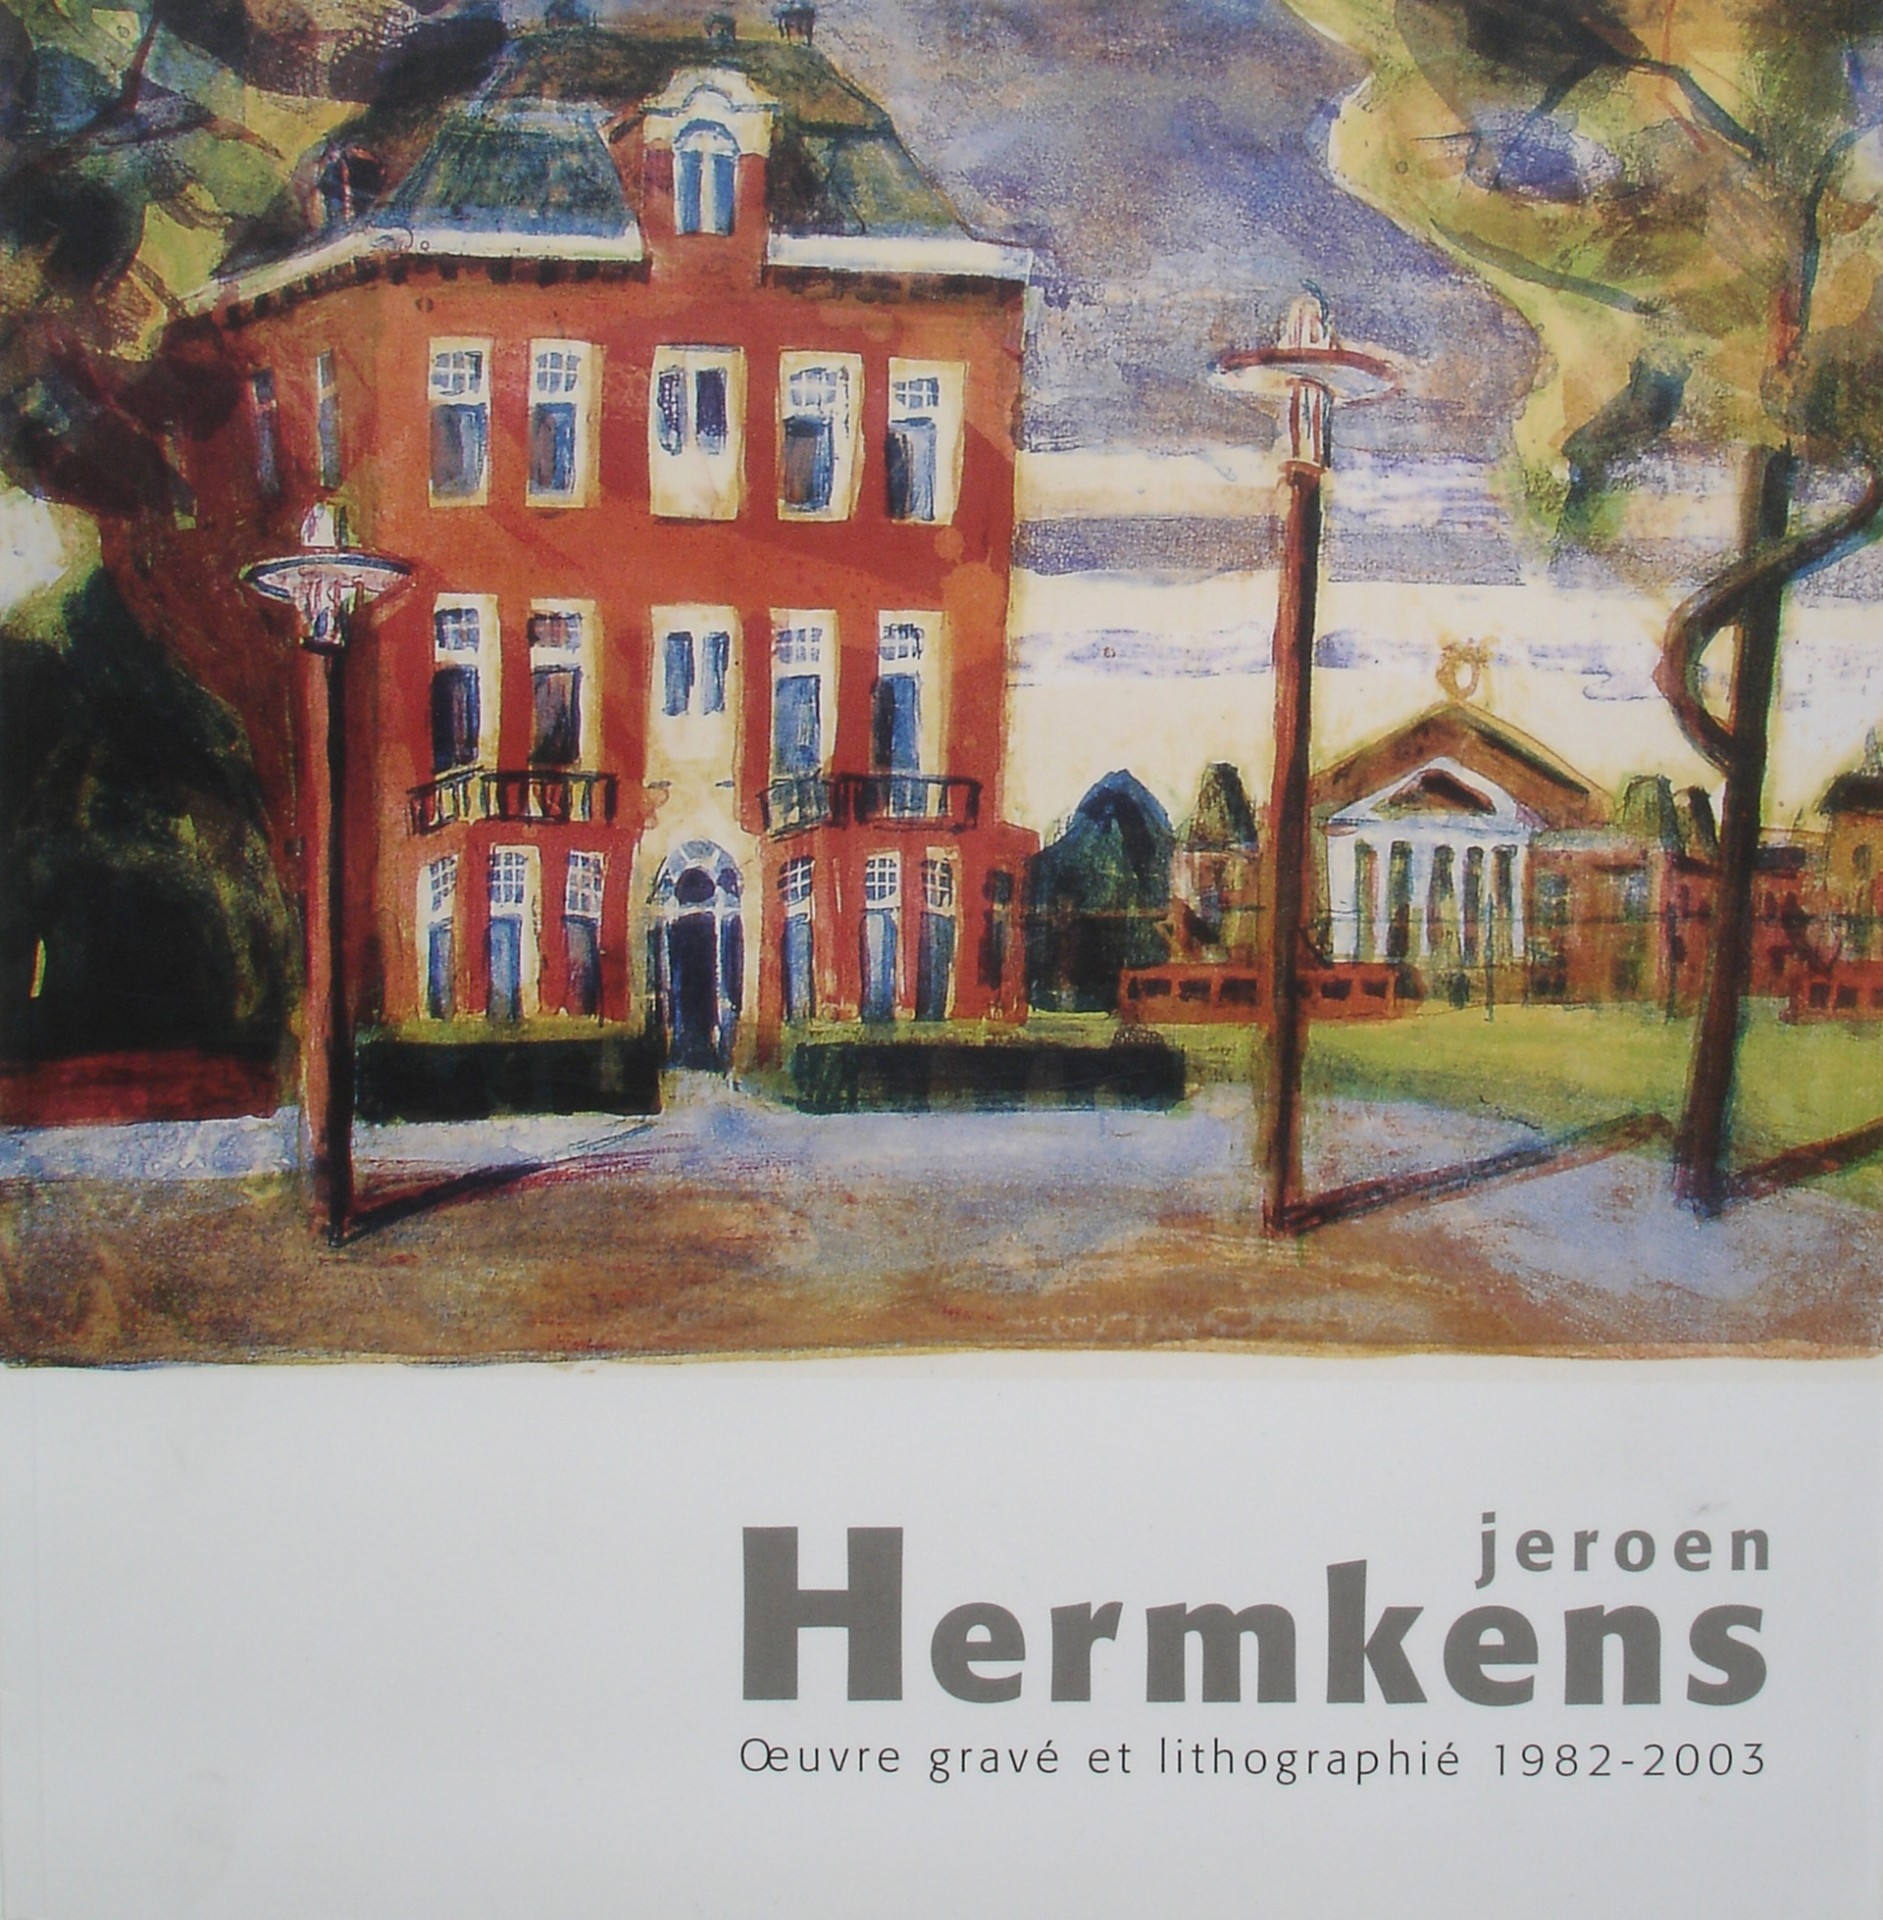 'Jeroen Hermkens-Oeuvre Grave Et Lithographie 1982-2003'